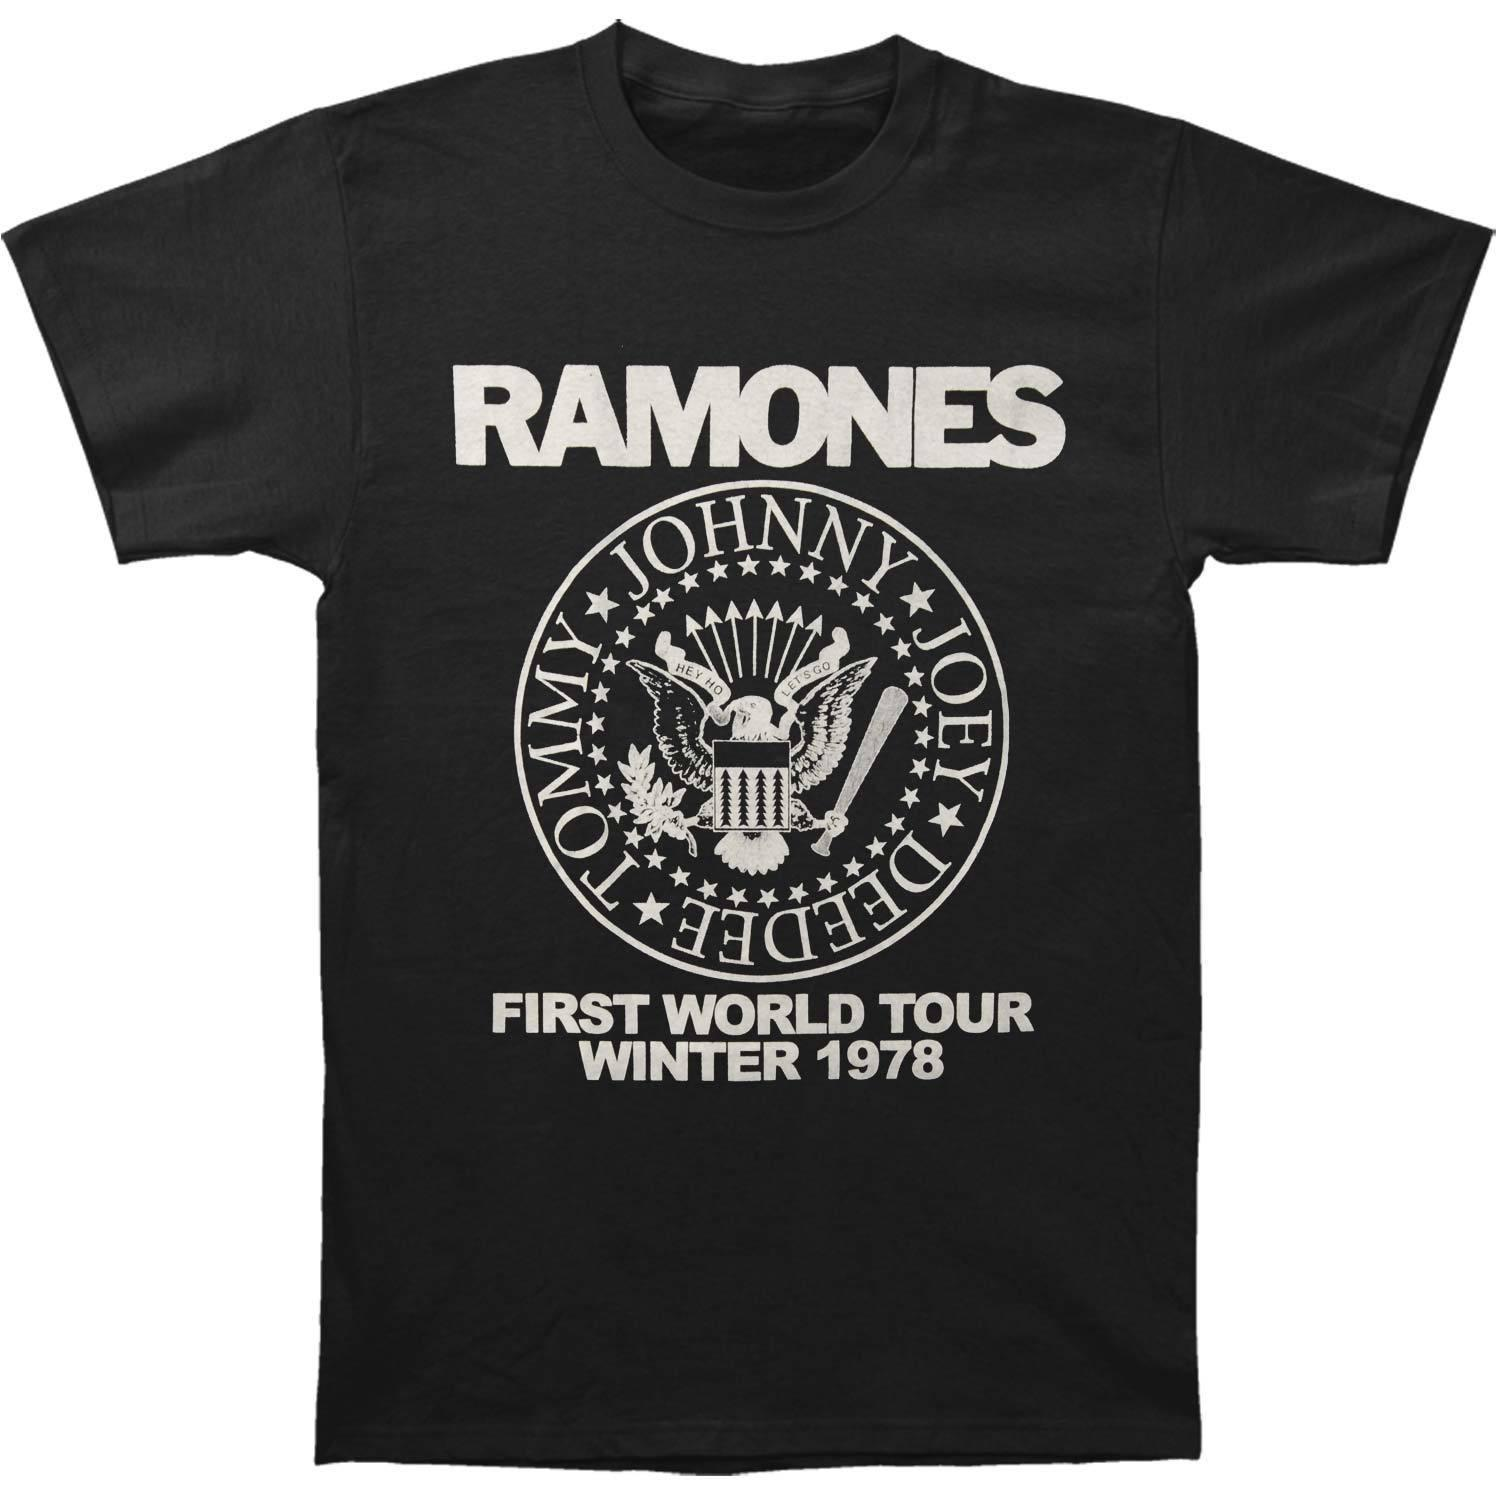 Printed t shirt mens short sleeve o neck t shirts summer stree twear ramones mens first world tour t shirt black online with 12 99 piece on cingostores